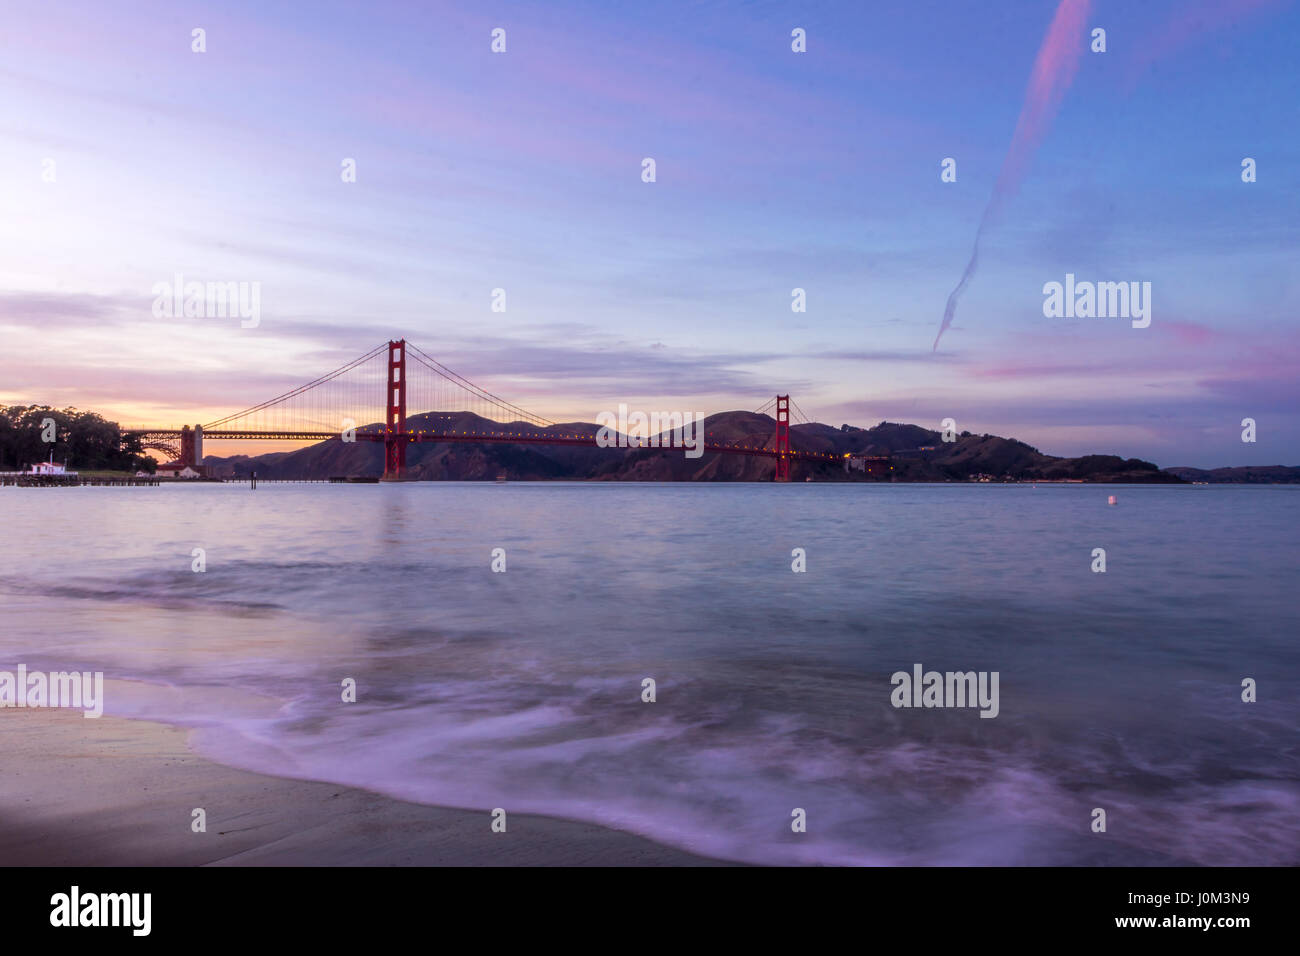 sea cliff san francisco stockfotos sea cliff san francisco bilder alamy. Black Bedroom Furniture Sets. Home Design Ideas